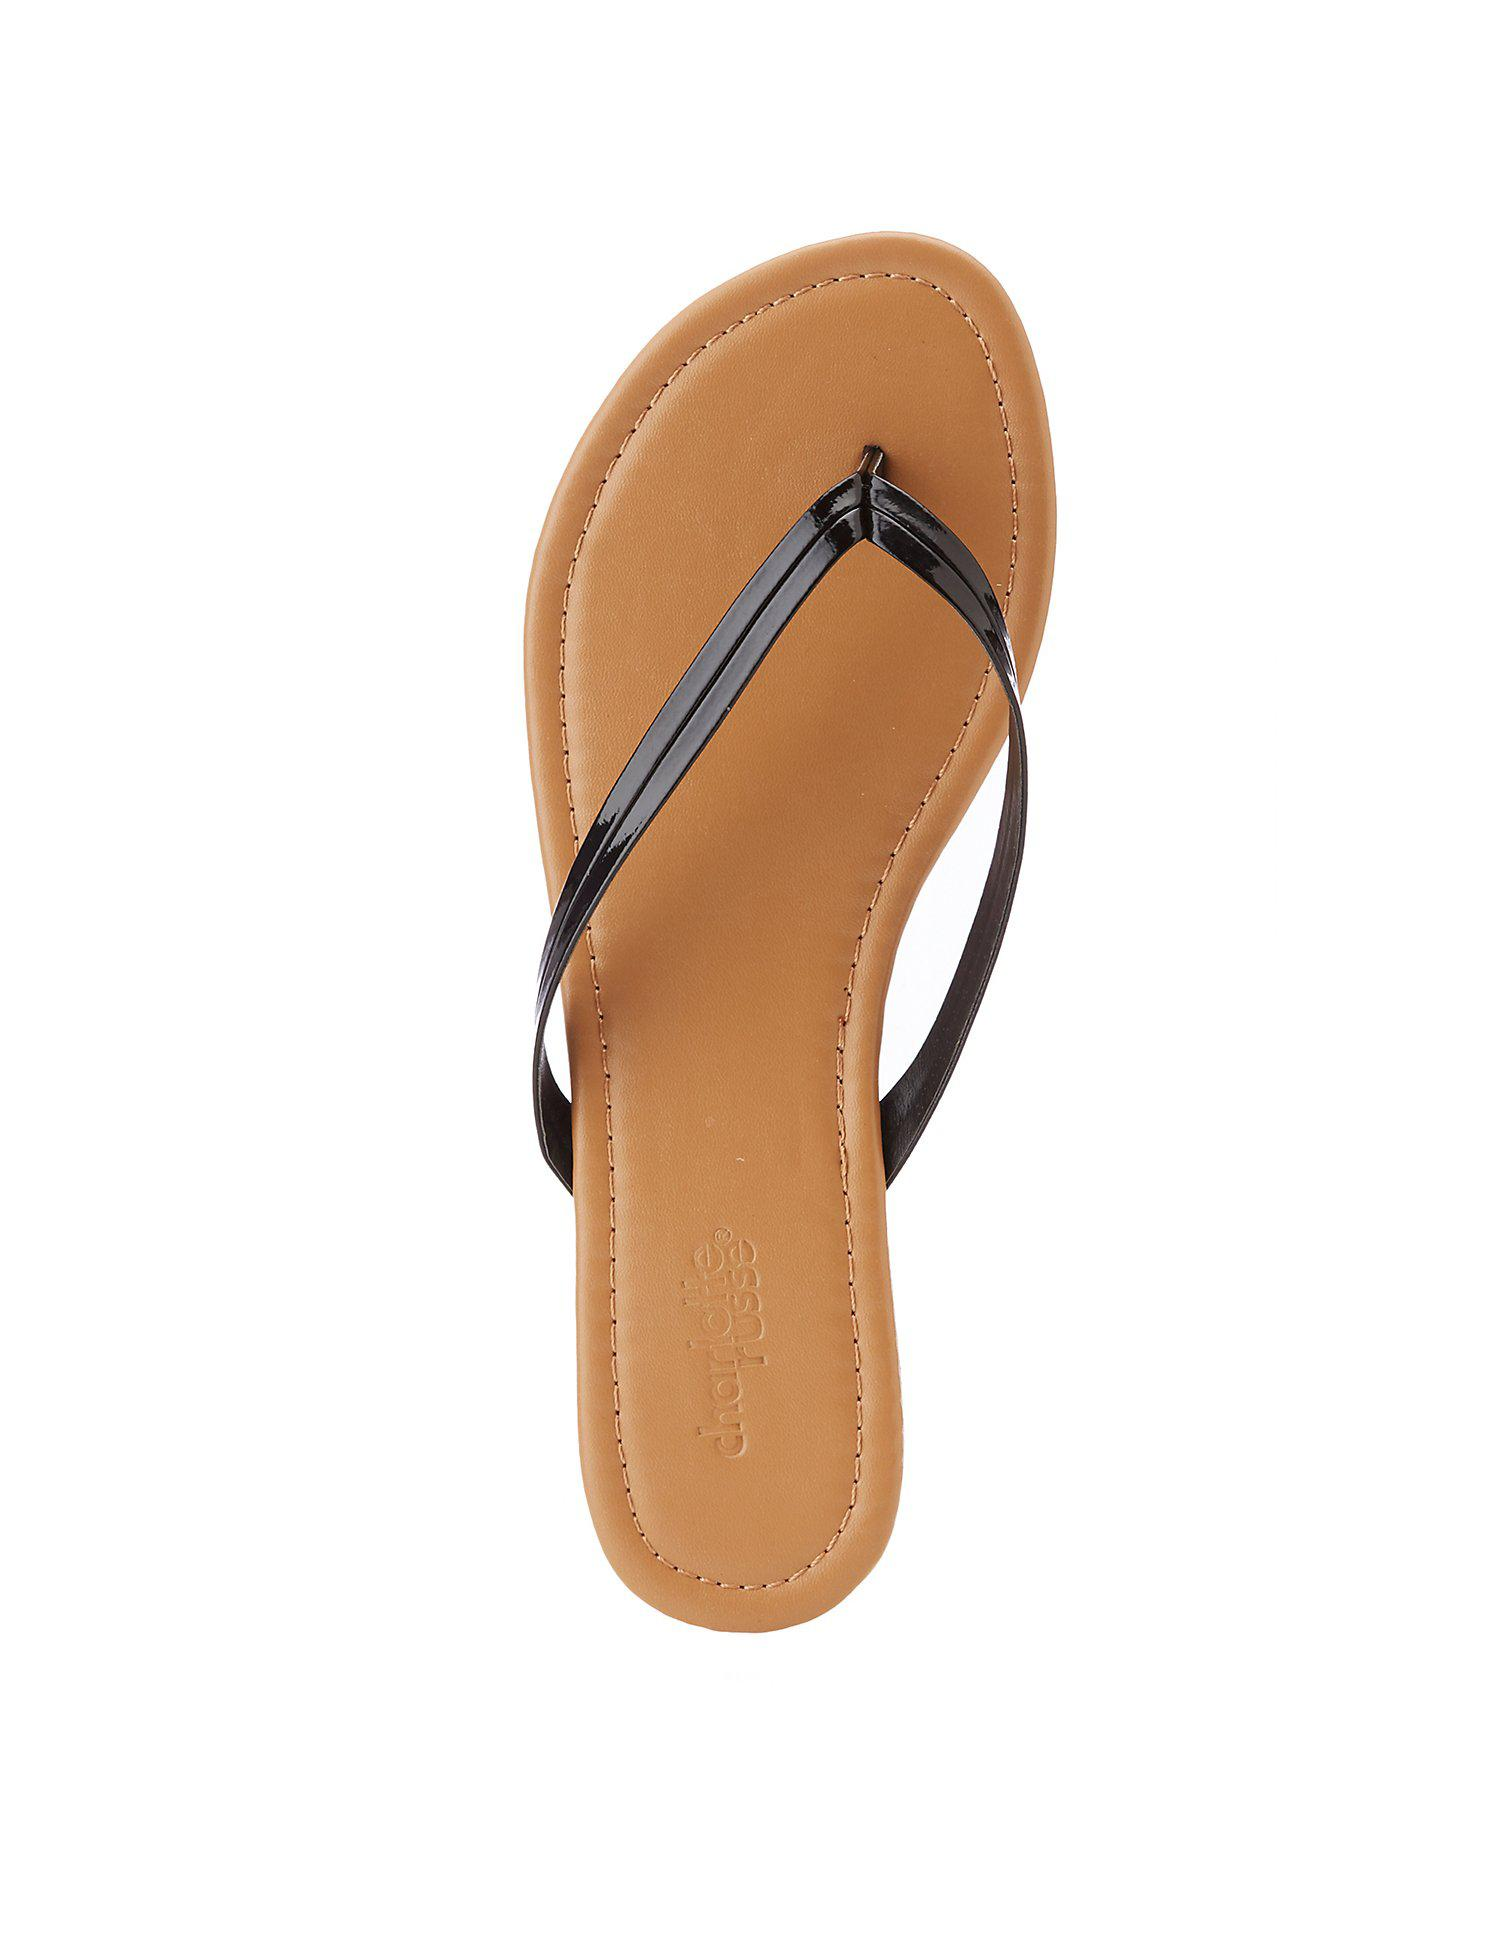 c1ac78f0e Lyst - Charlotte Russe Faux Patent Leather Flip Flops in Black ...